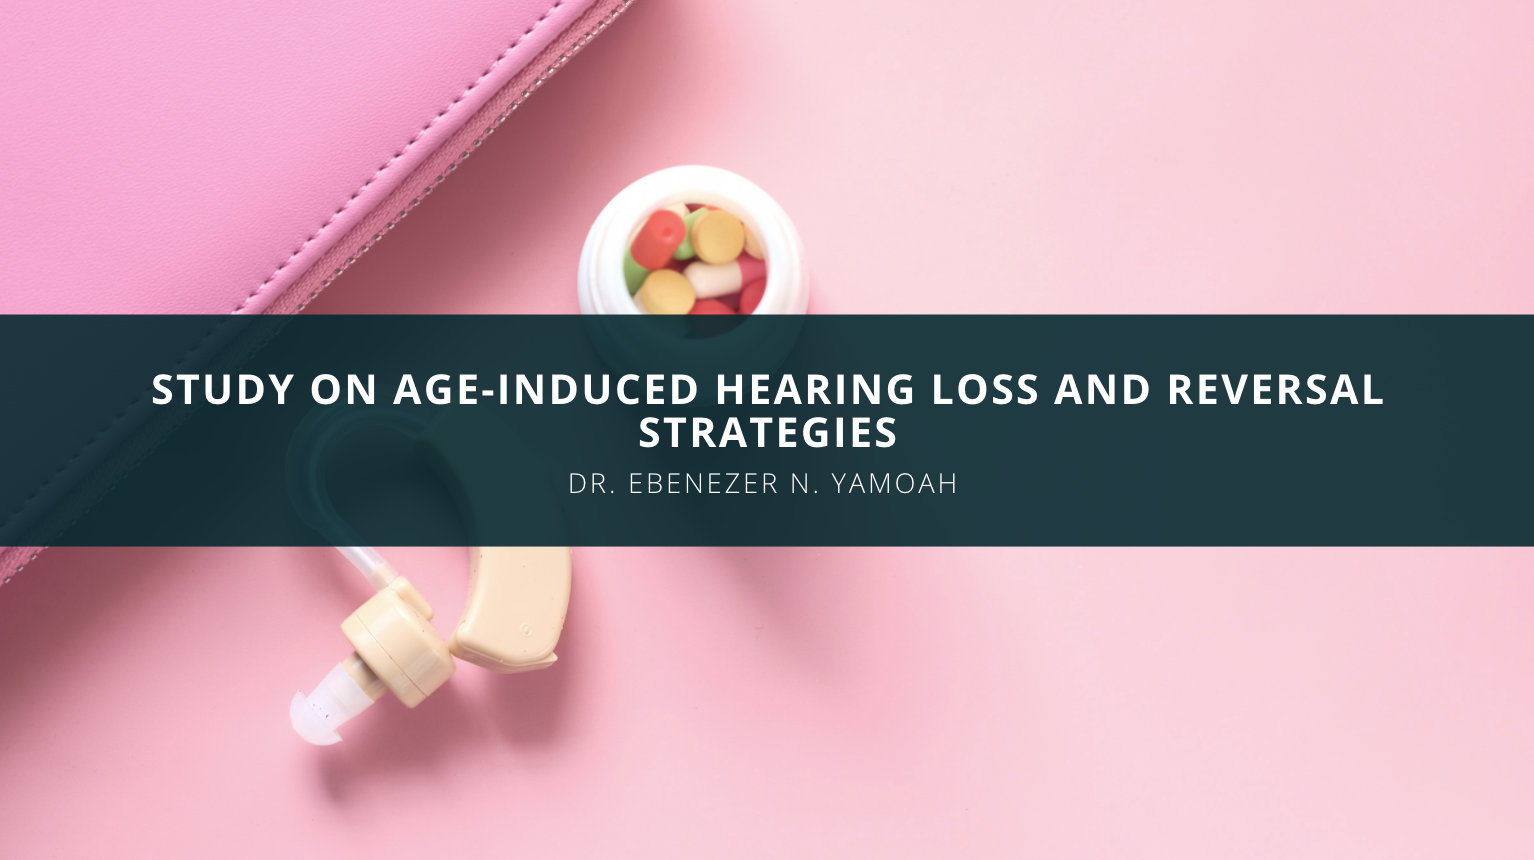 Dr. Ebenezer N. Yamoah Undertake Study on Age-Induced Hearing Loss and Reversal Strategies